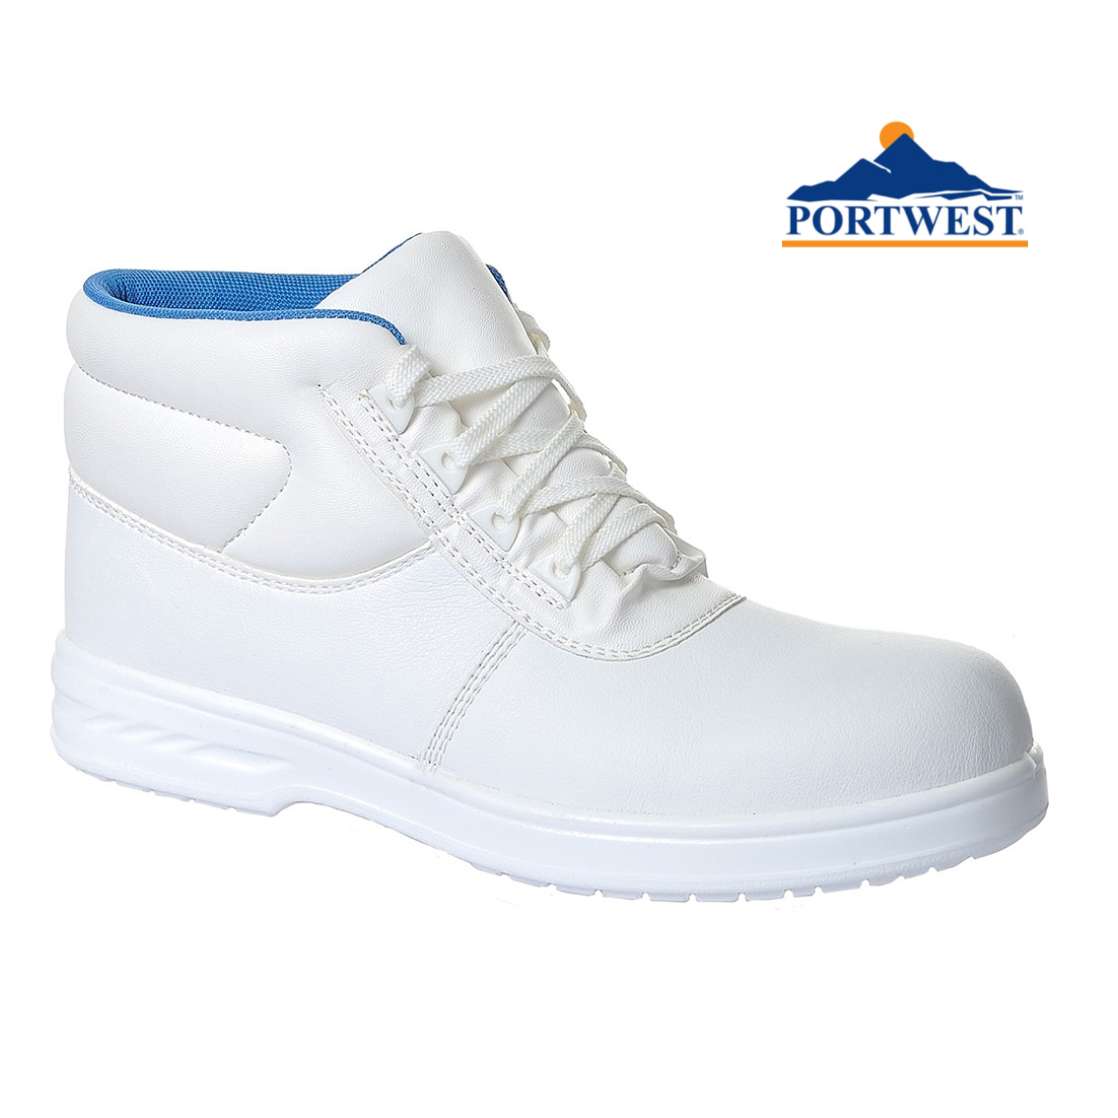 Portwest Ankle High Top Laced Hiking Walking shoes Boots Trainers Toe Cap FW88